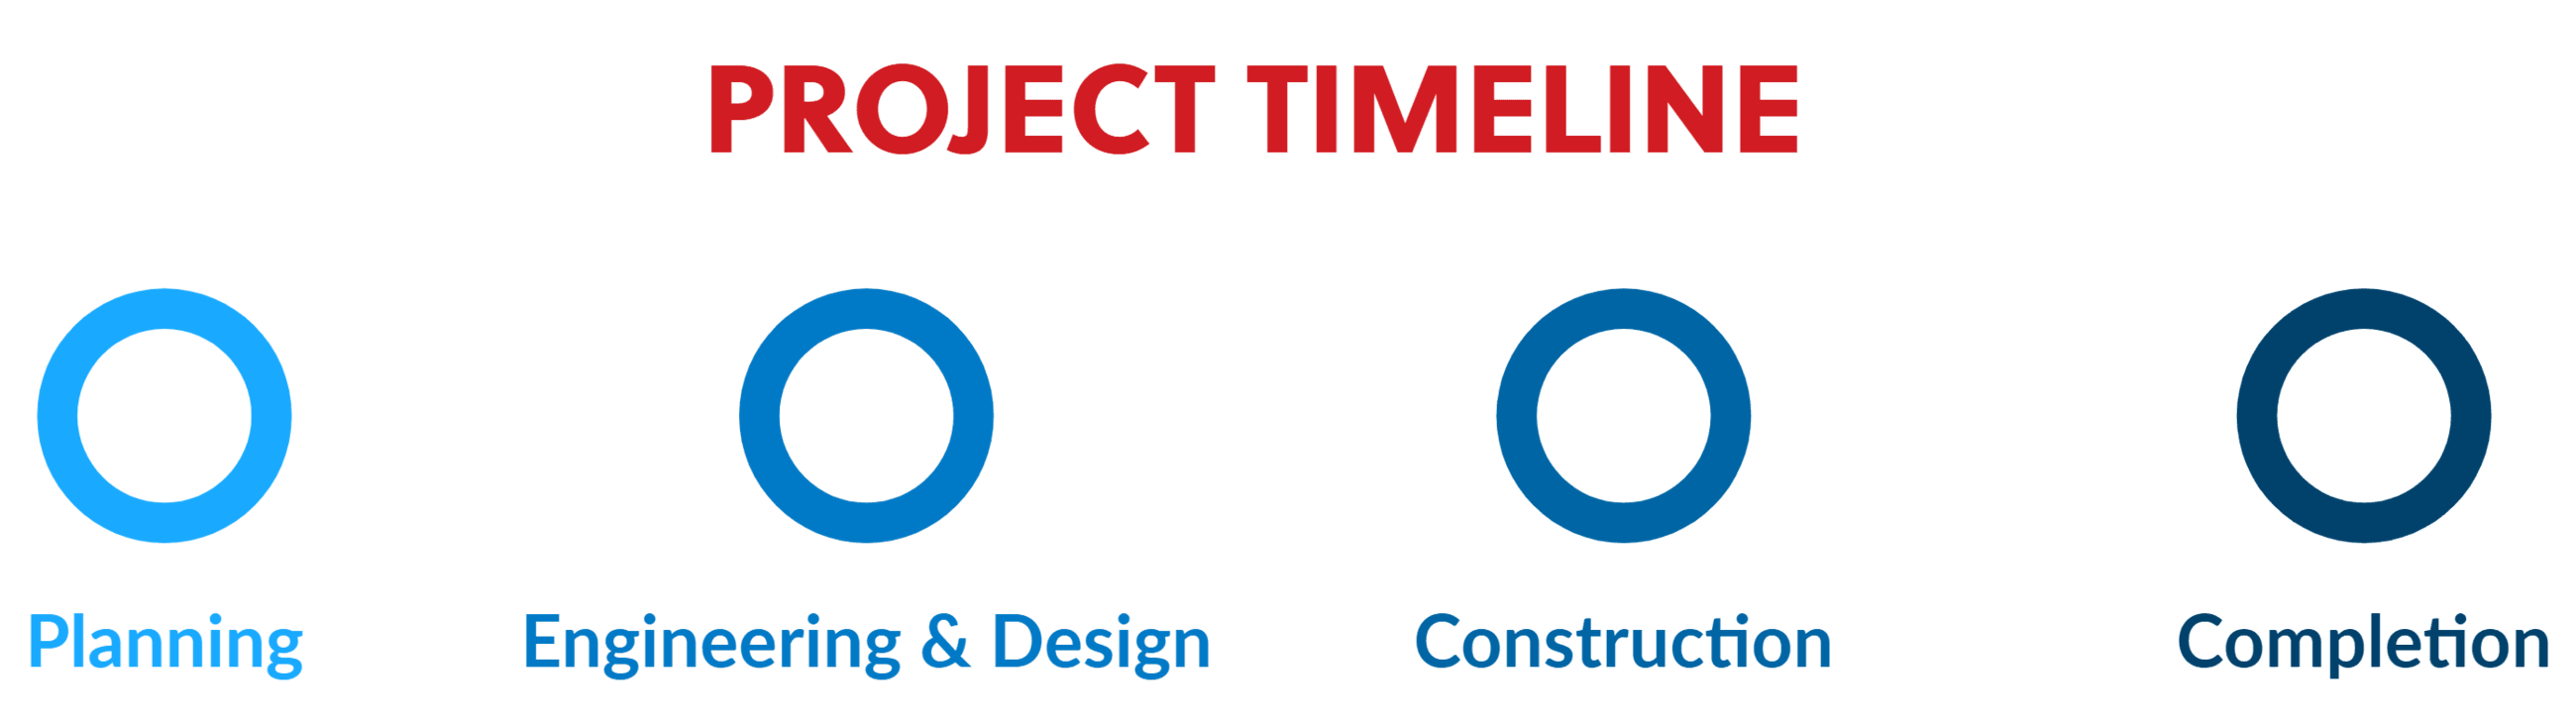 Project Timeline (7)